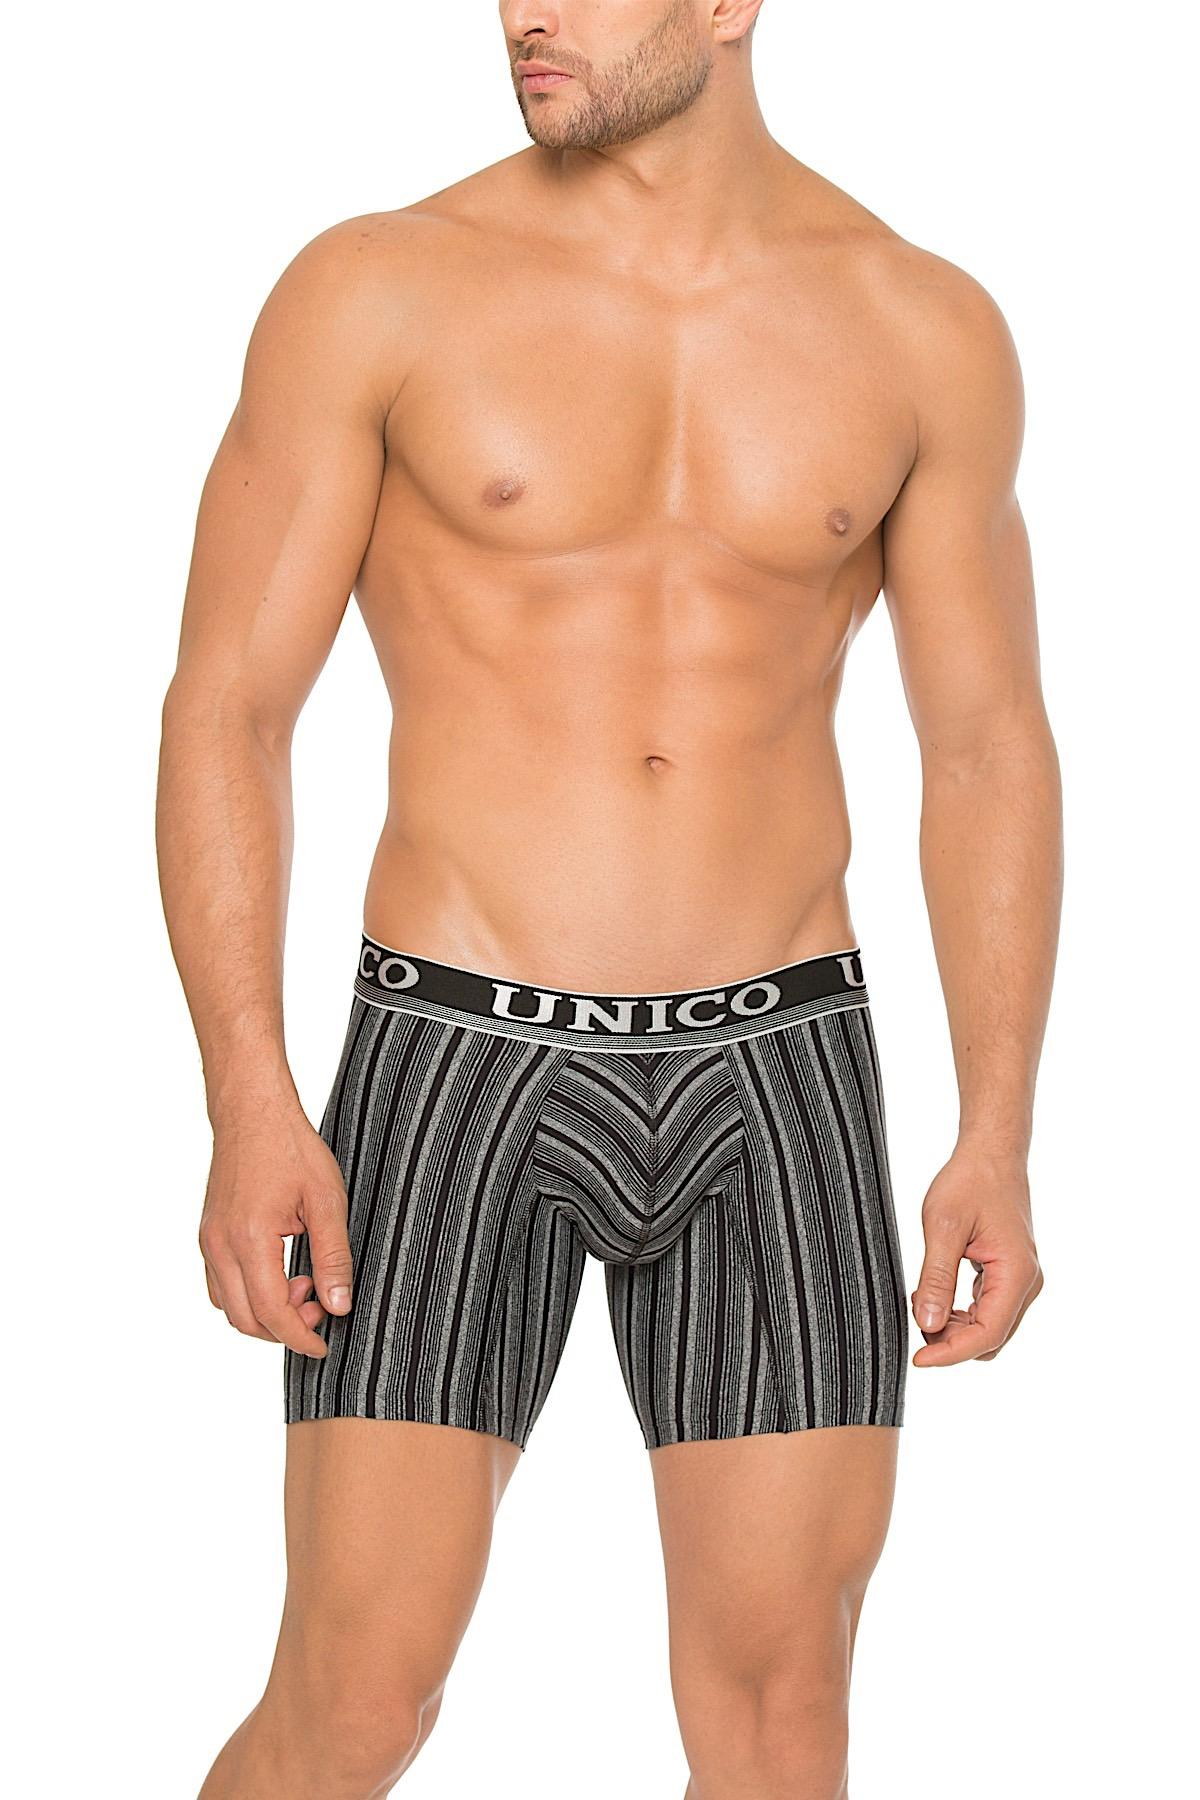 Unico Gray/Black Polo Boxer Brief